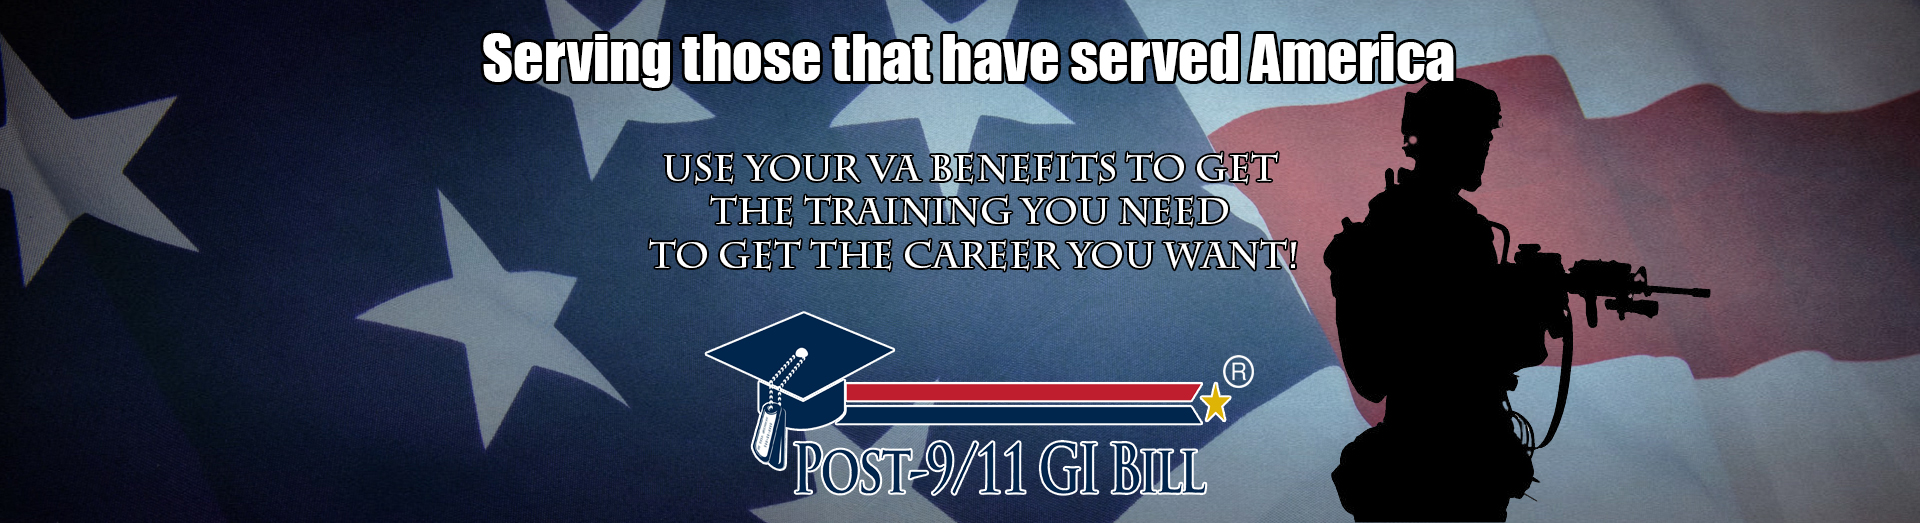 New-Banner-Flag-Background-GI-Bill-1